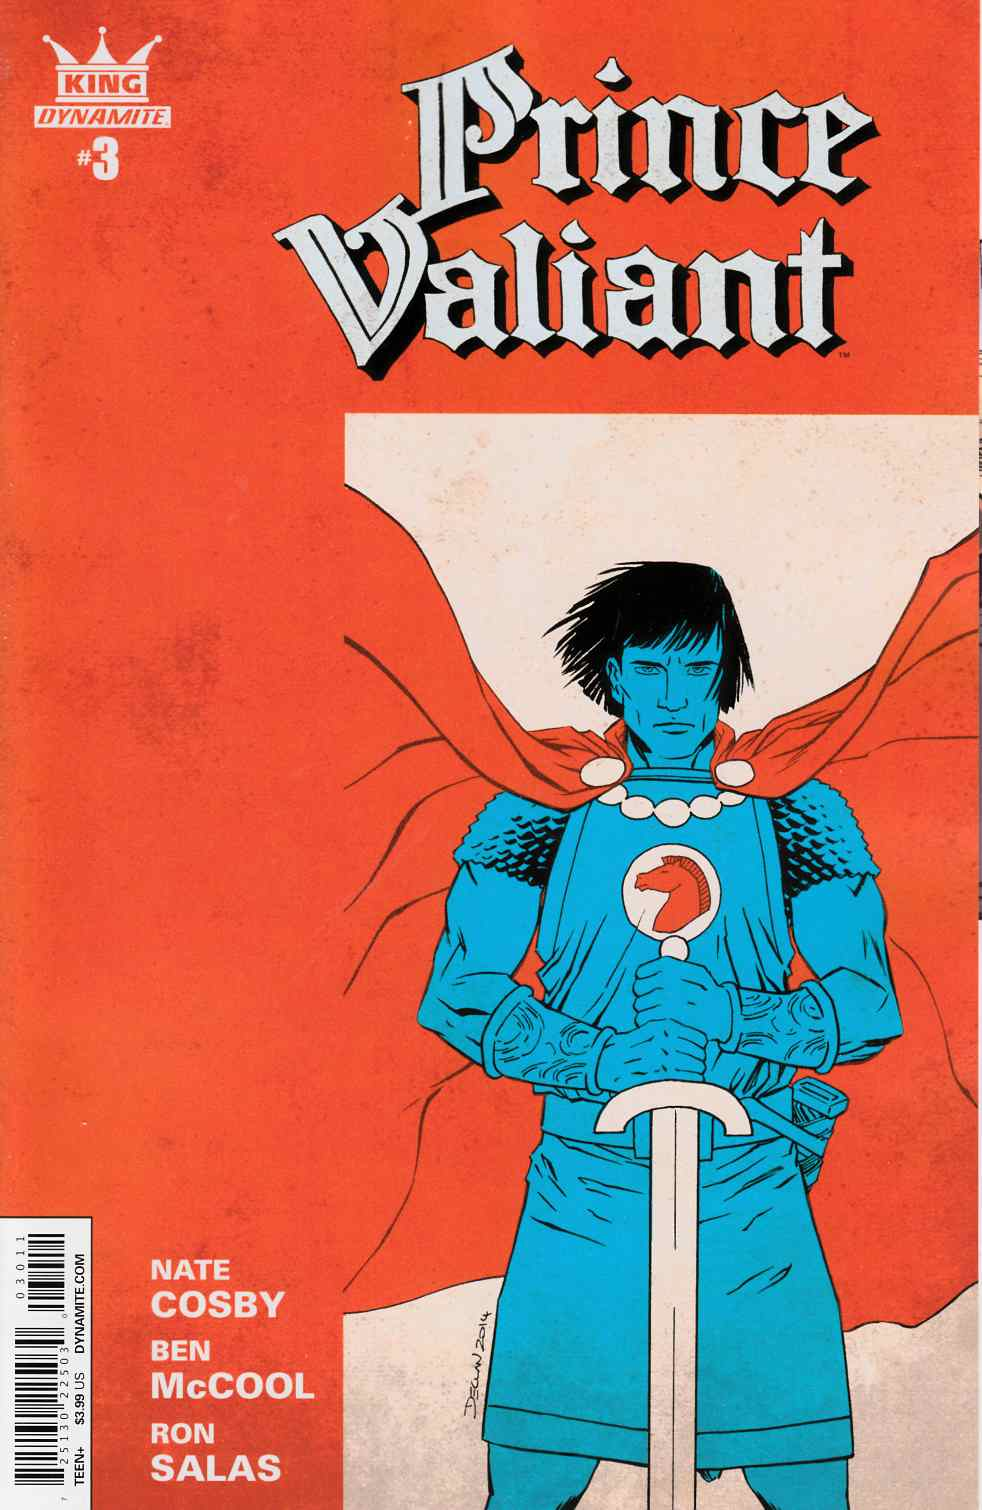 King Prince Valiant #3 [Dynamite Comic]